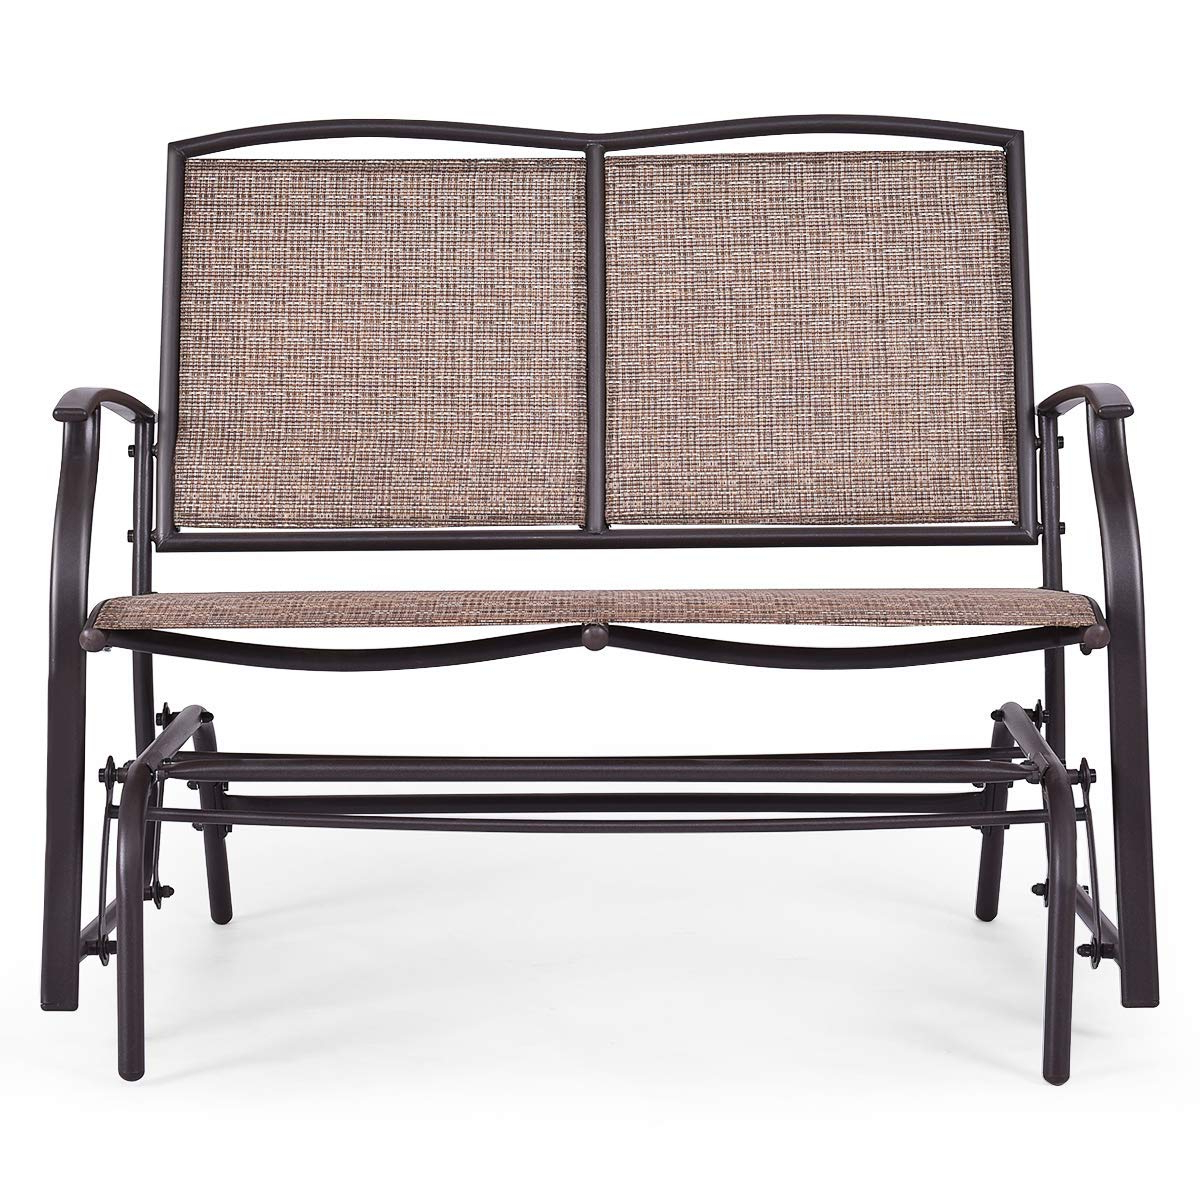 Amazon : Wenst'skufan Patio Glider Chair, Outdoor In Famous Outdoor Patio Swing Glider Bench Chairs (View 22 of 30)